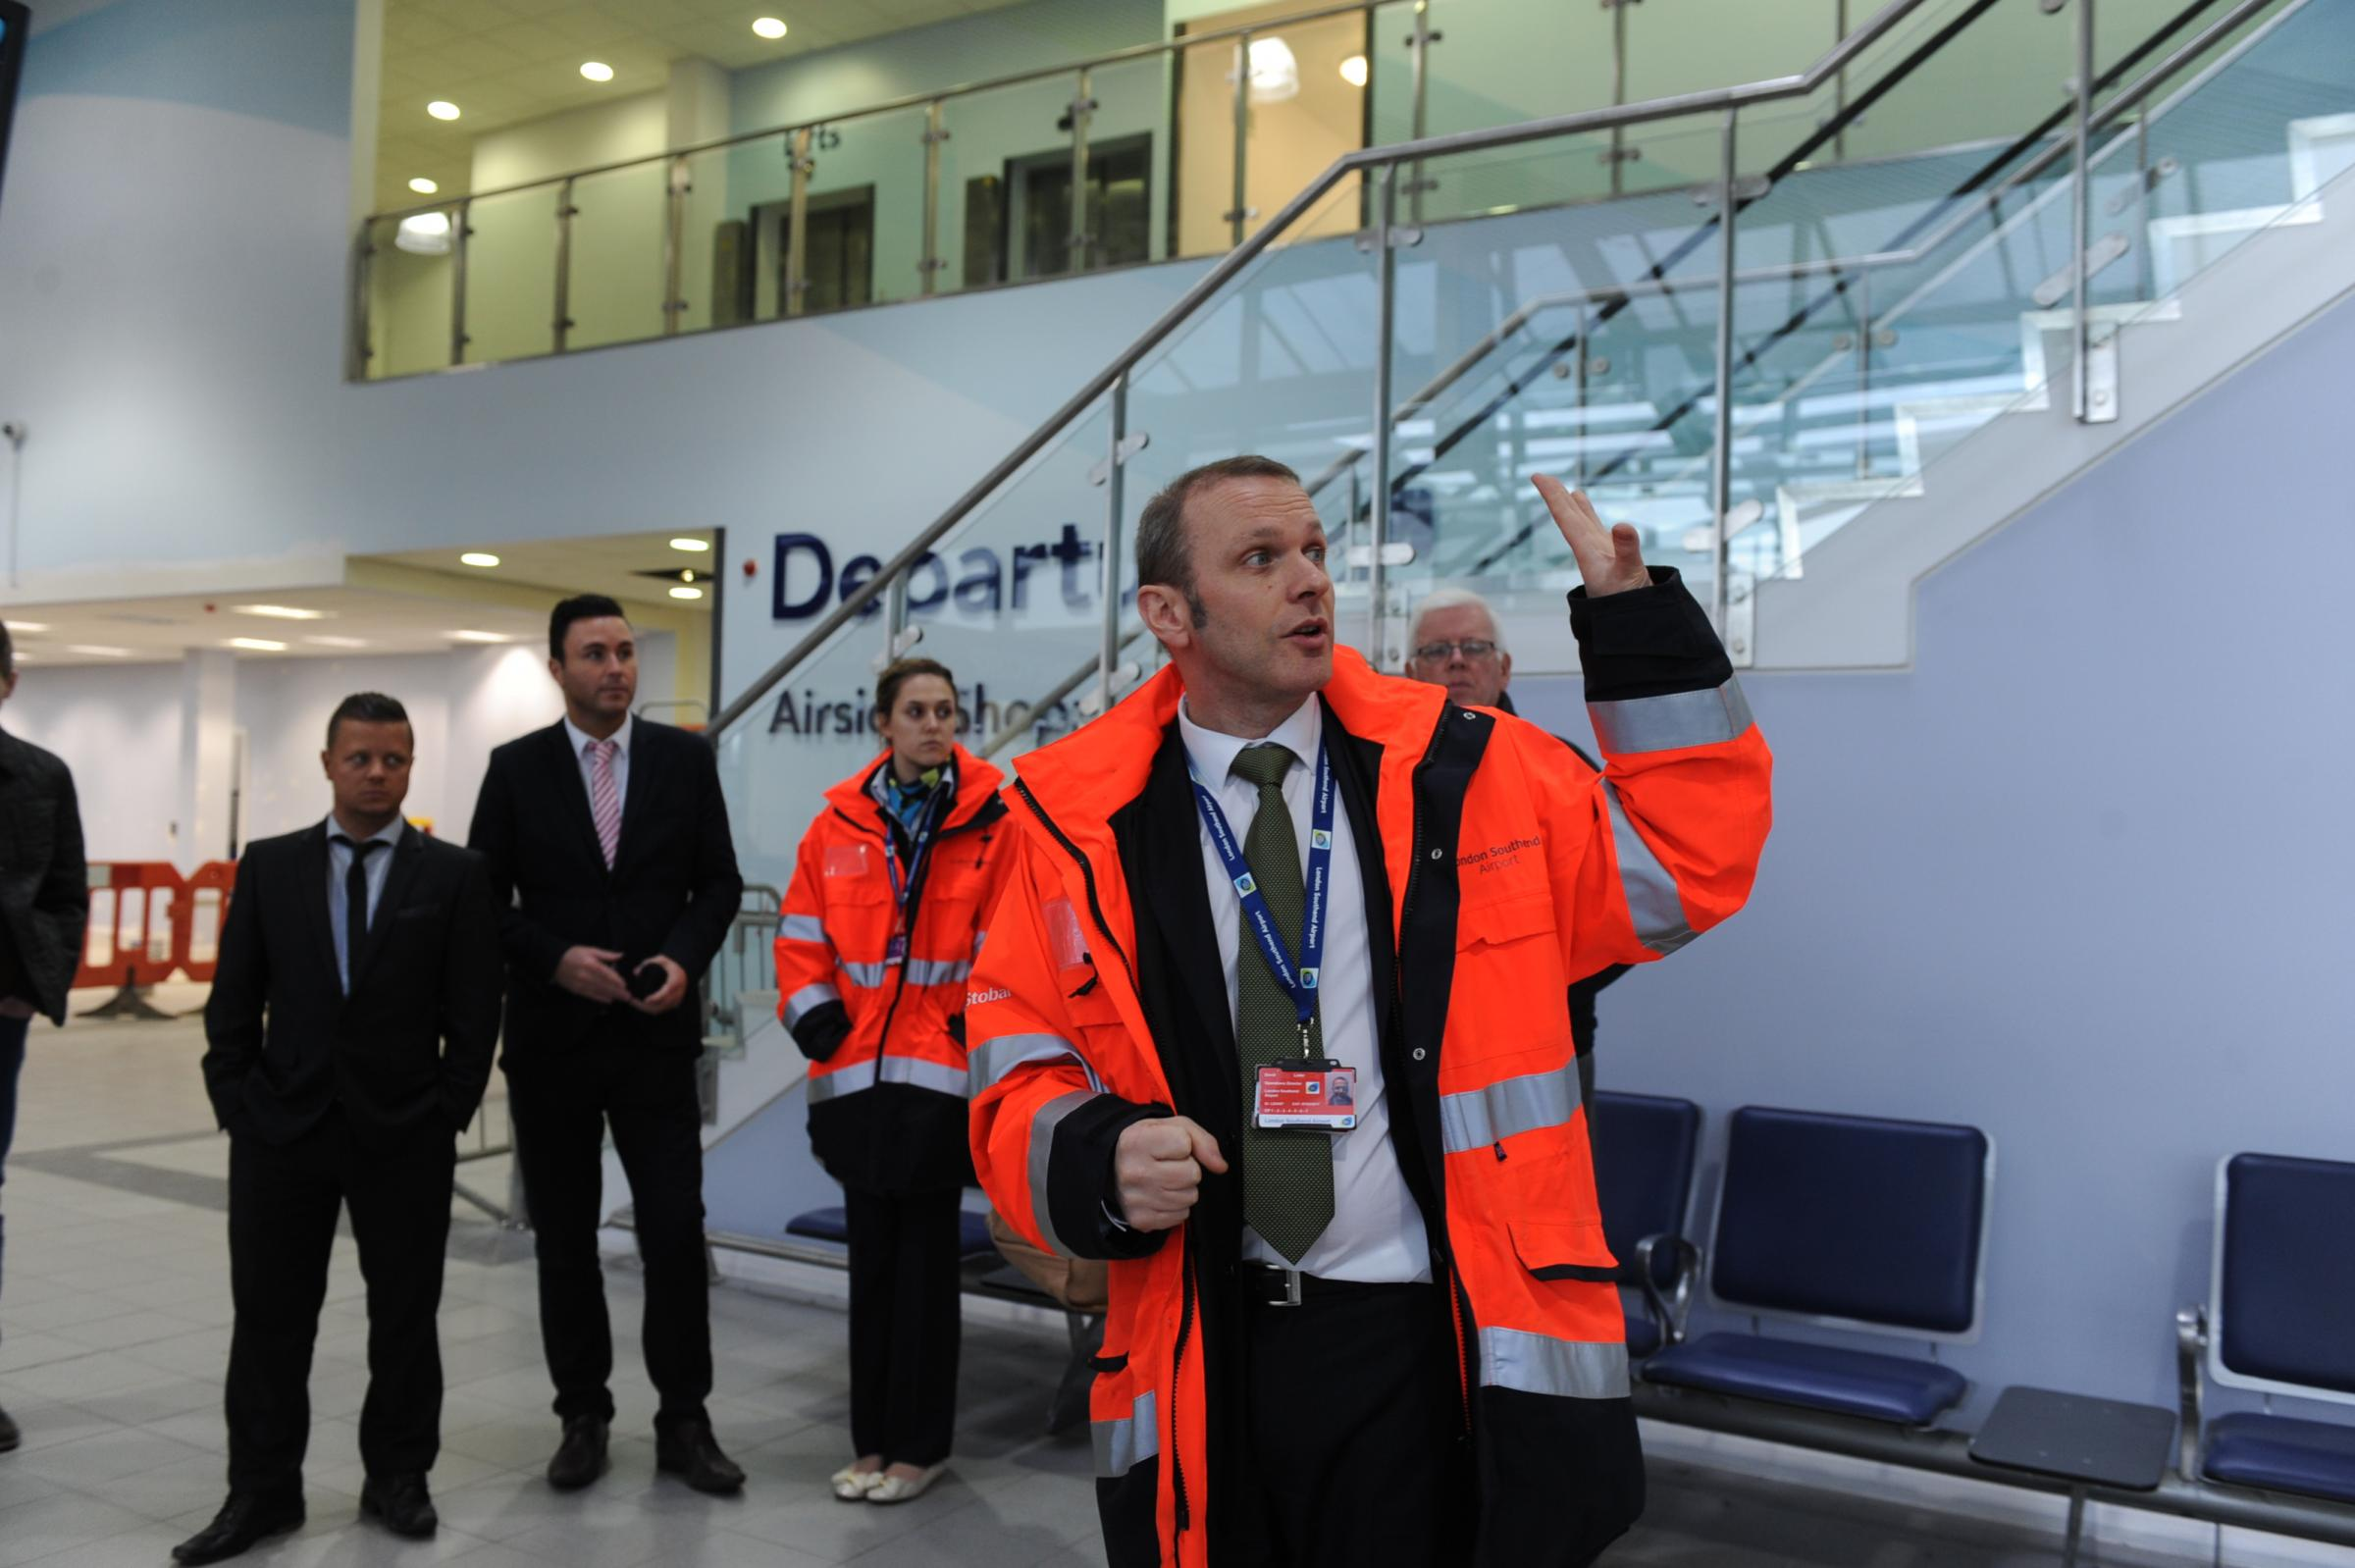 David Lister at the terminal before it opened earlier this year.